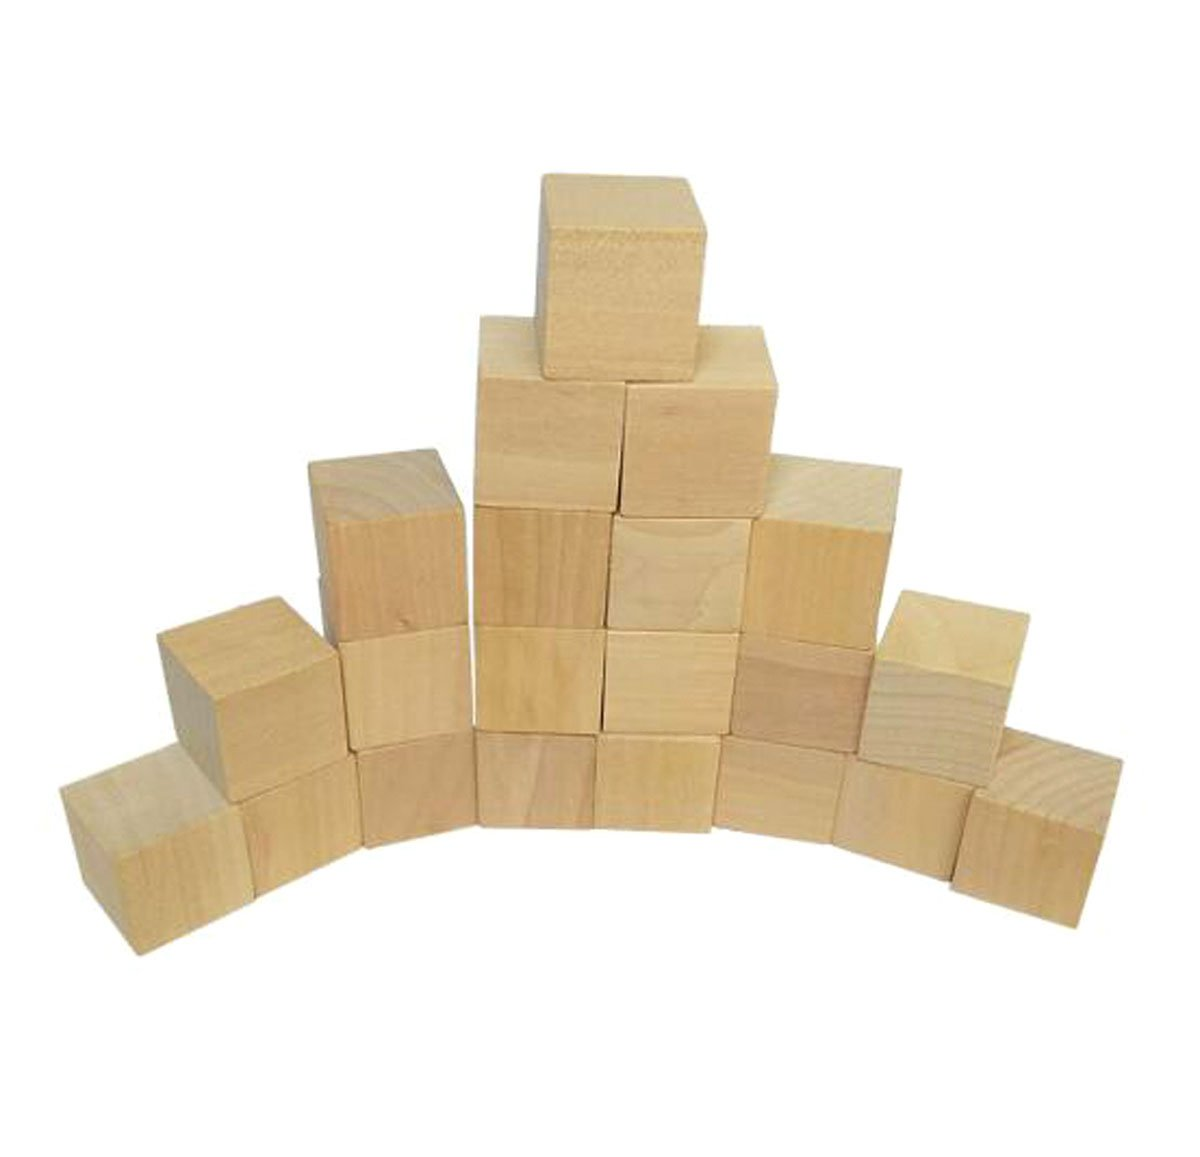 50 Pieces Blank Wooden Cubes - Wood Square Blocks - Unfinished Craft Wood Blocks for DIY Crafts Carving Art Supplies (10 x 10 x 10mm) Nicedmm